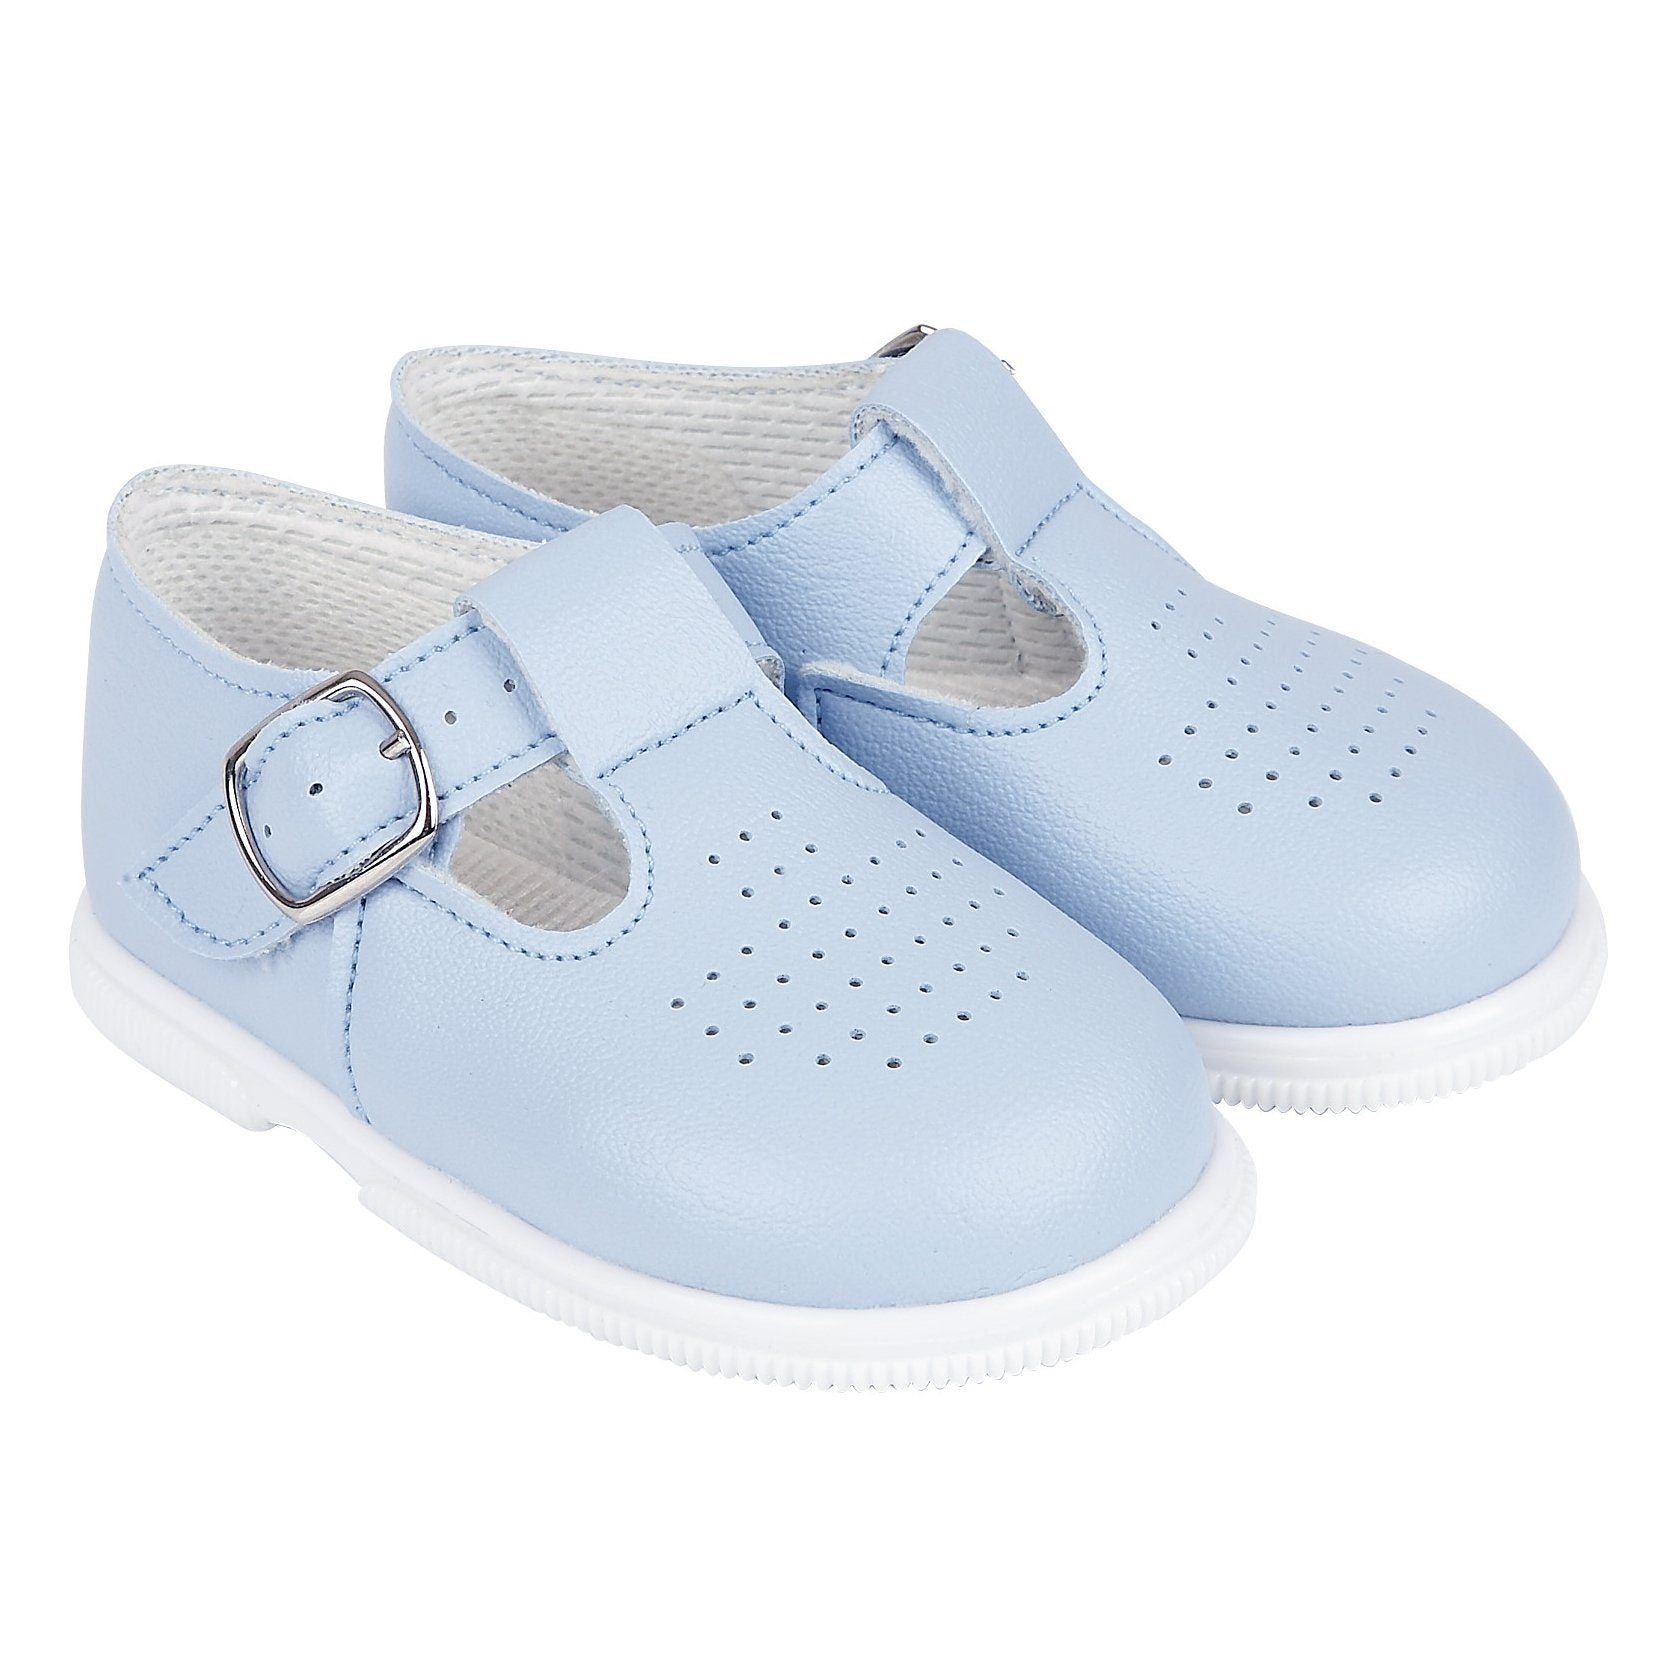 Baypods Light Blue T-Bar Hard Sole Shoes | Millie and John